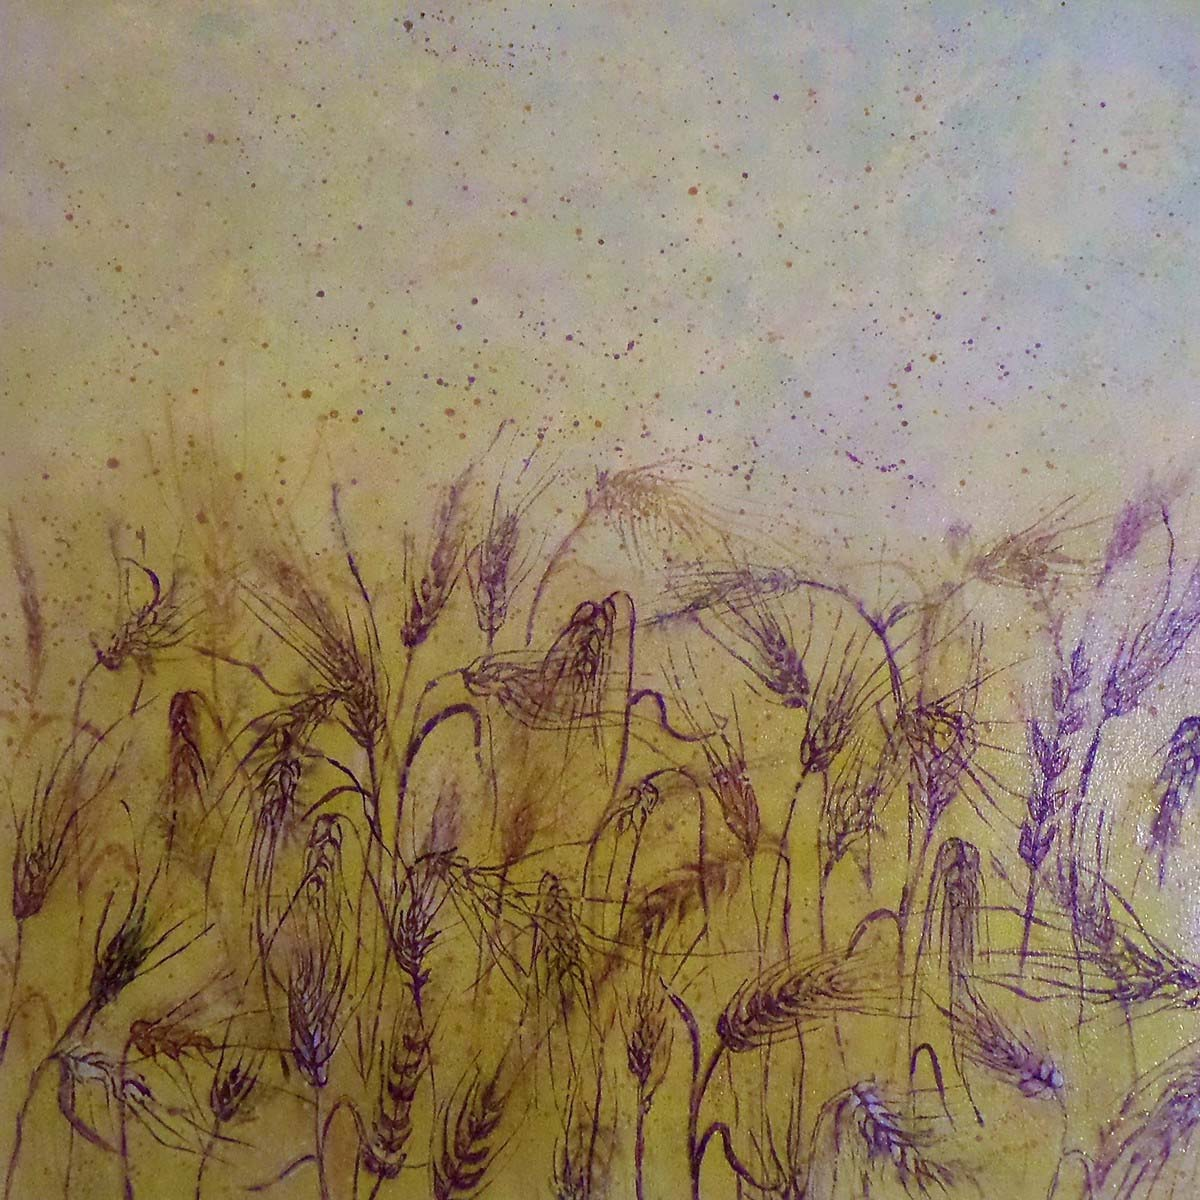 Purple Snow - Golden Wheat Field Magic copy